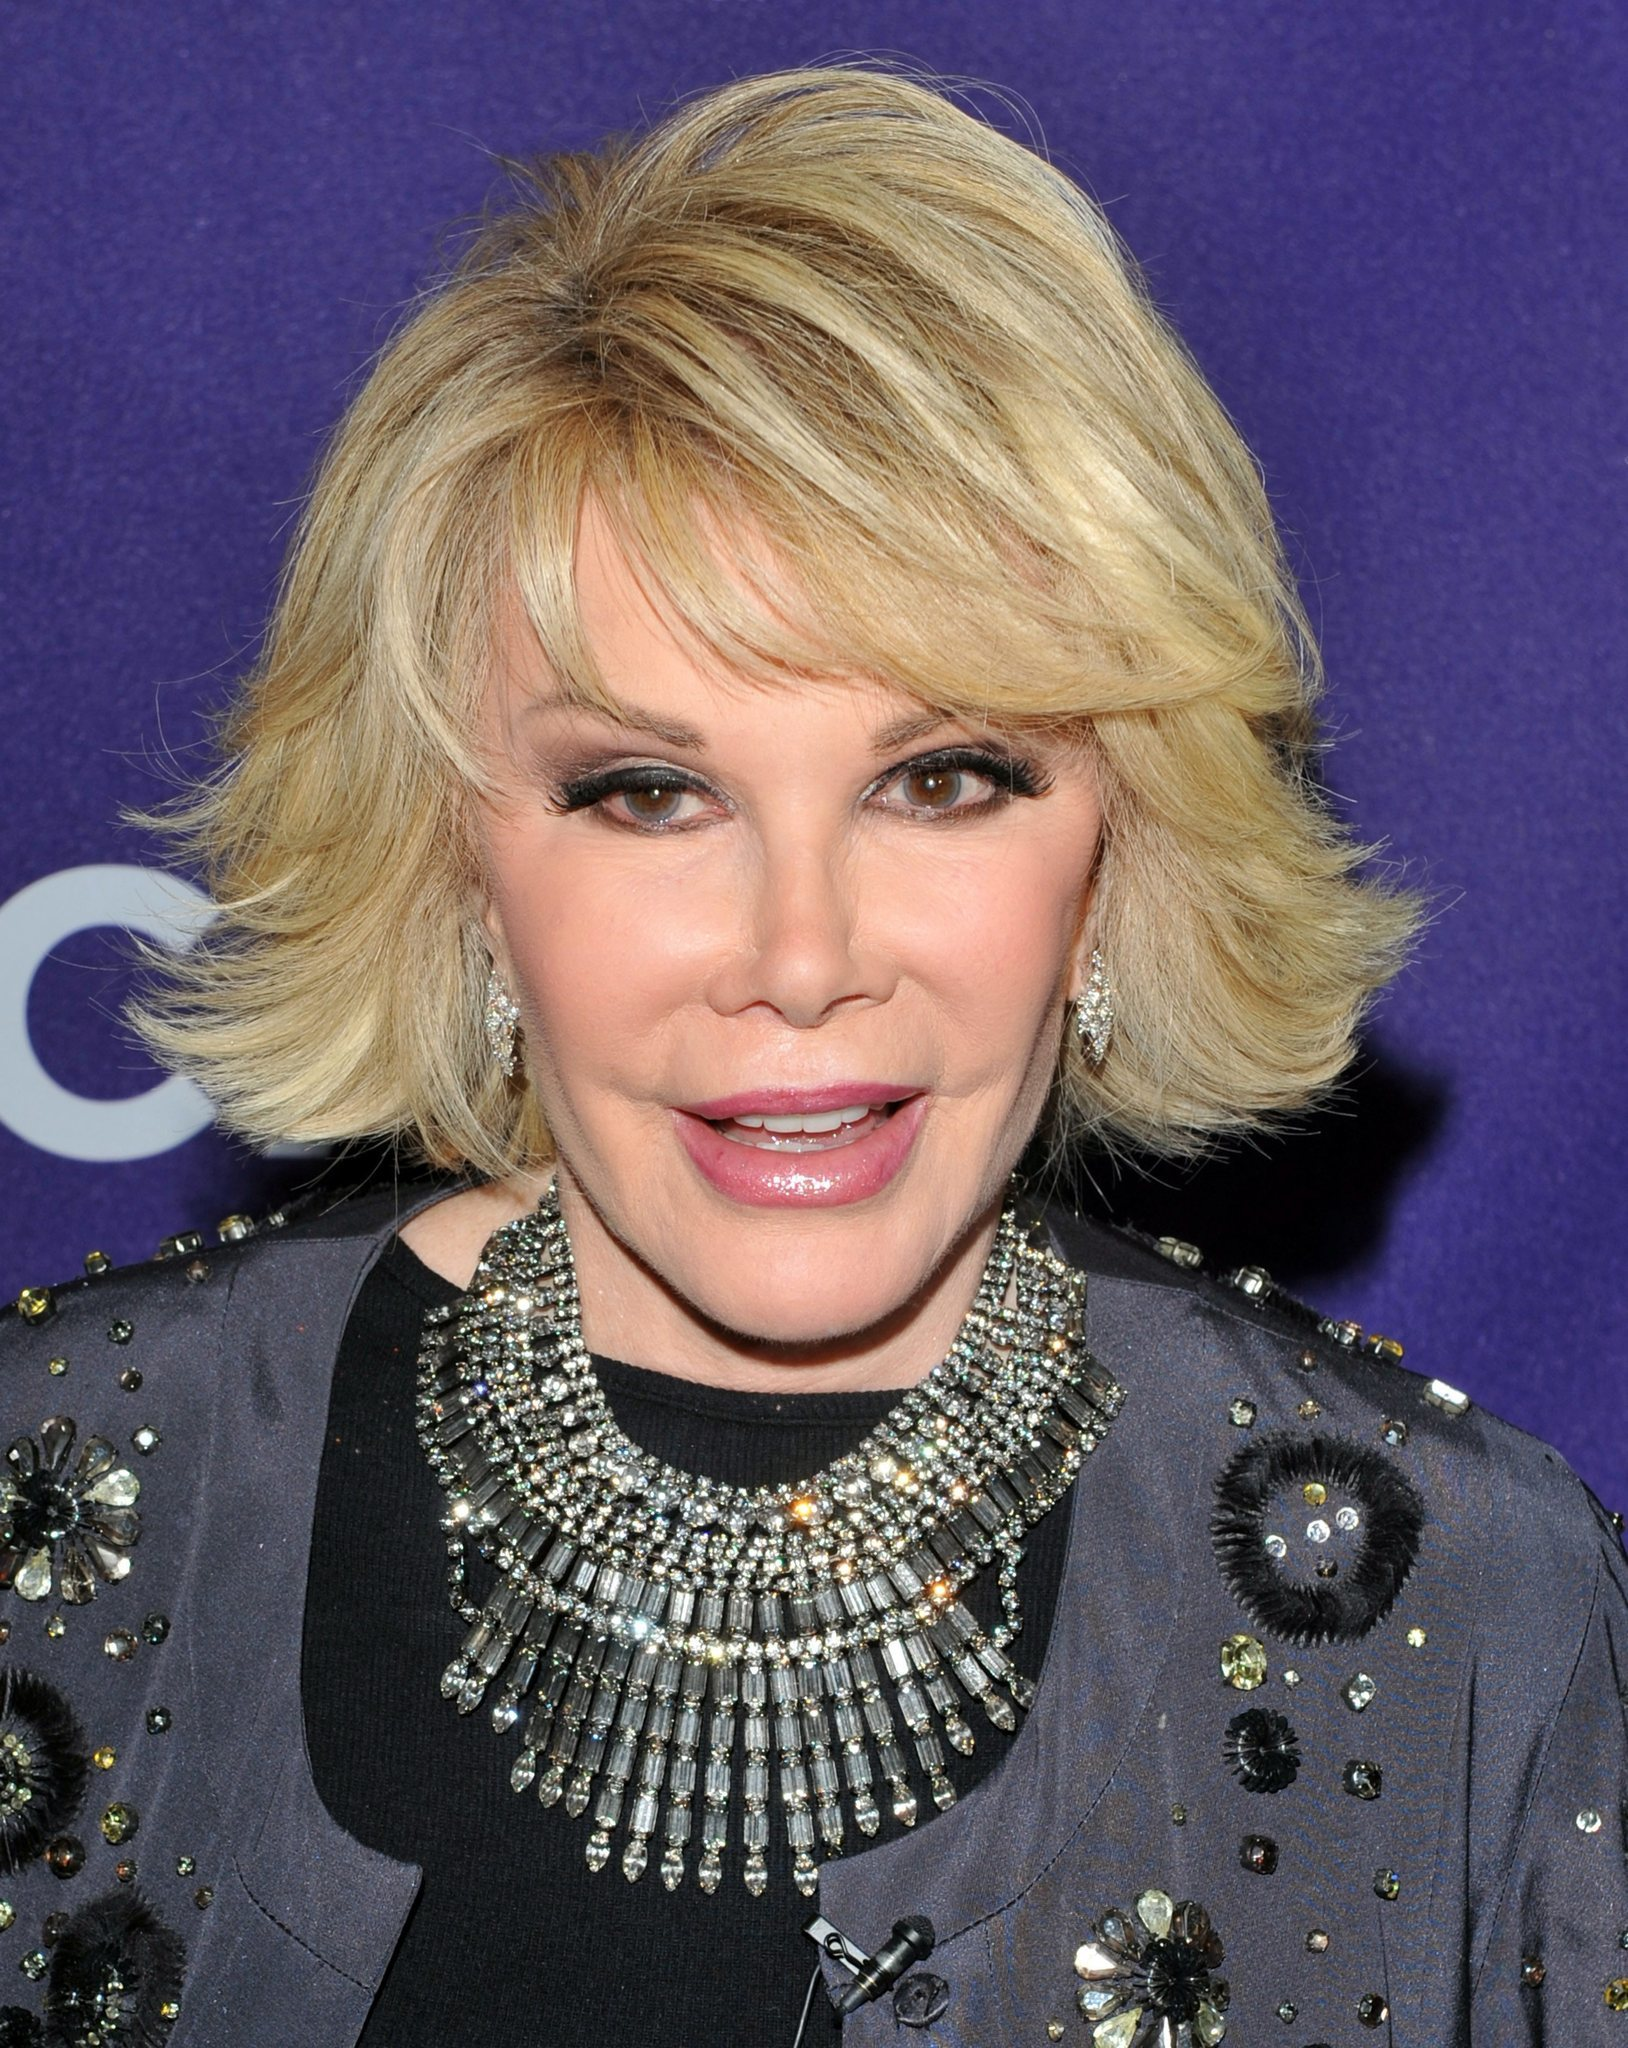 Joan Rivers Remains On Life Support Fashion Police 2 Week Hold La Times